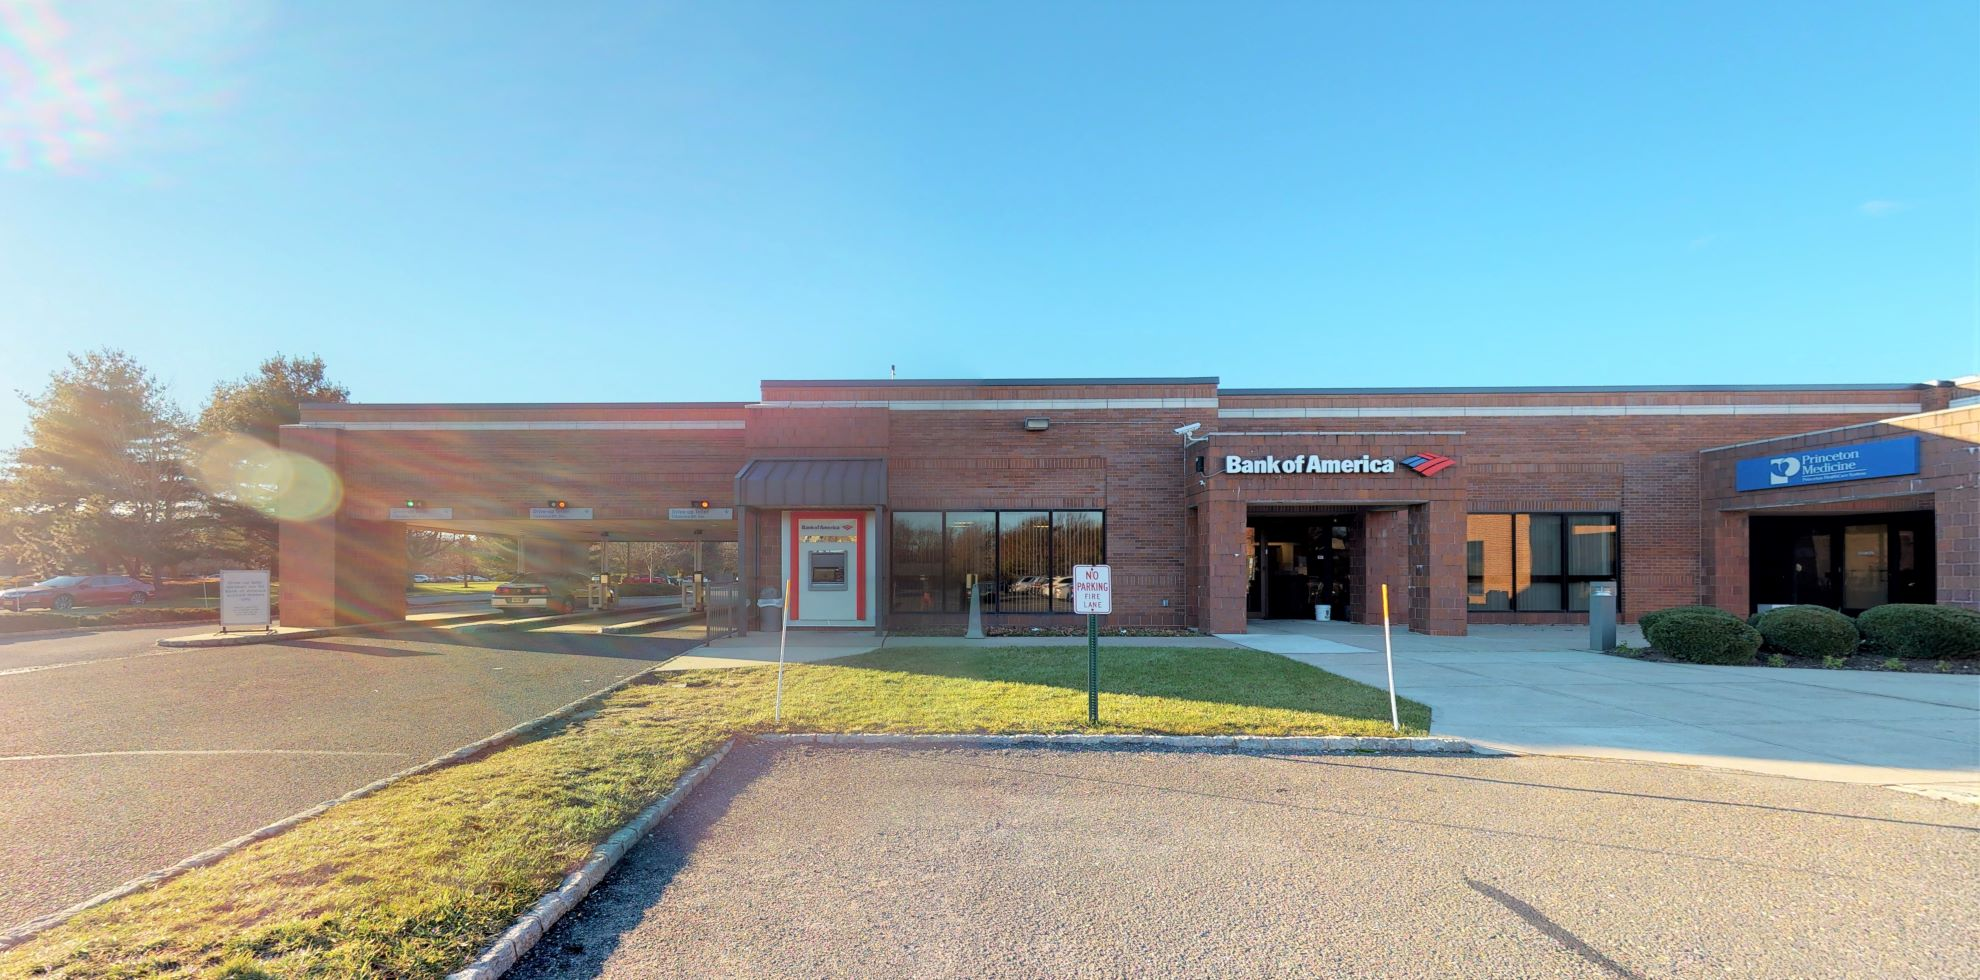 Bank of America financial center with drive-thru ATM and teller | 2 Centre Dr, Monroe Township, NJ 08831